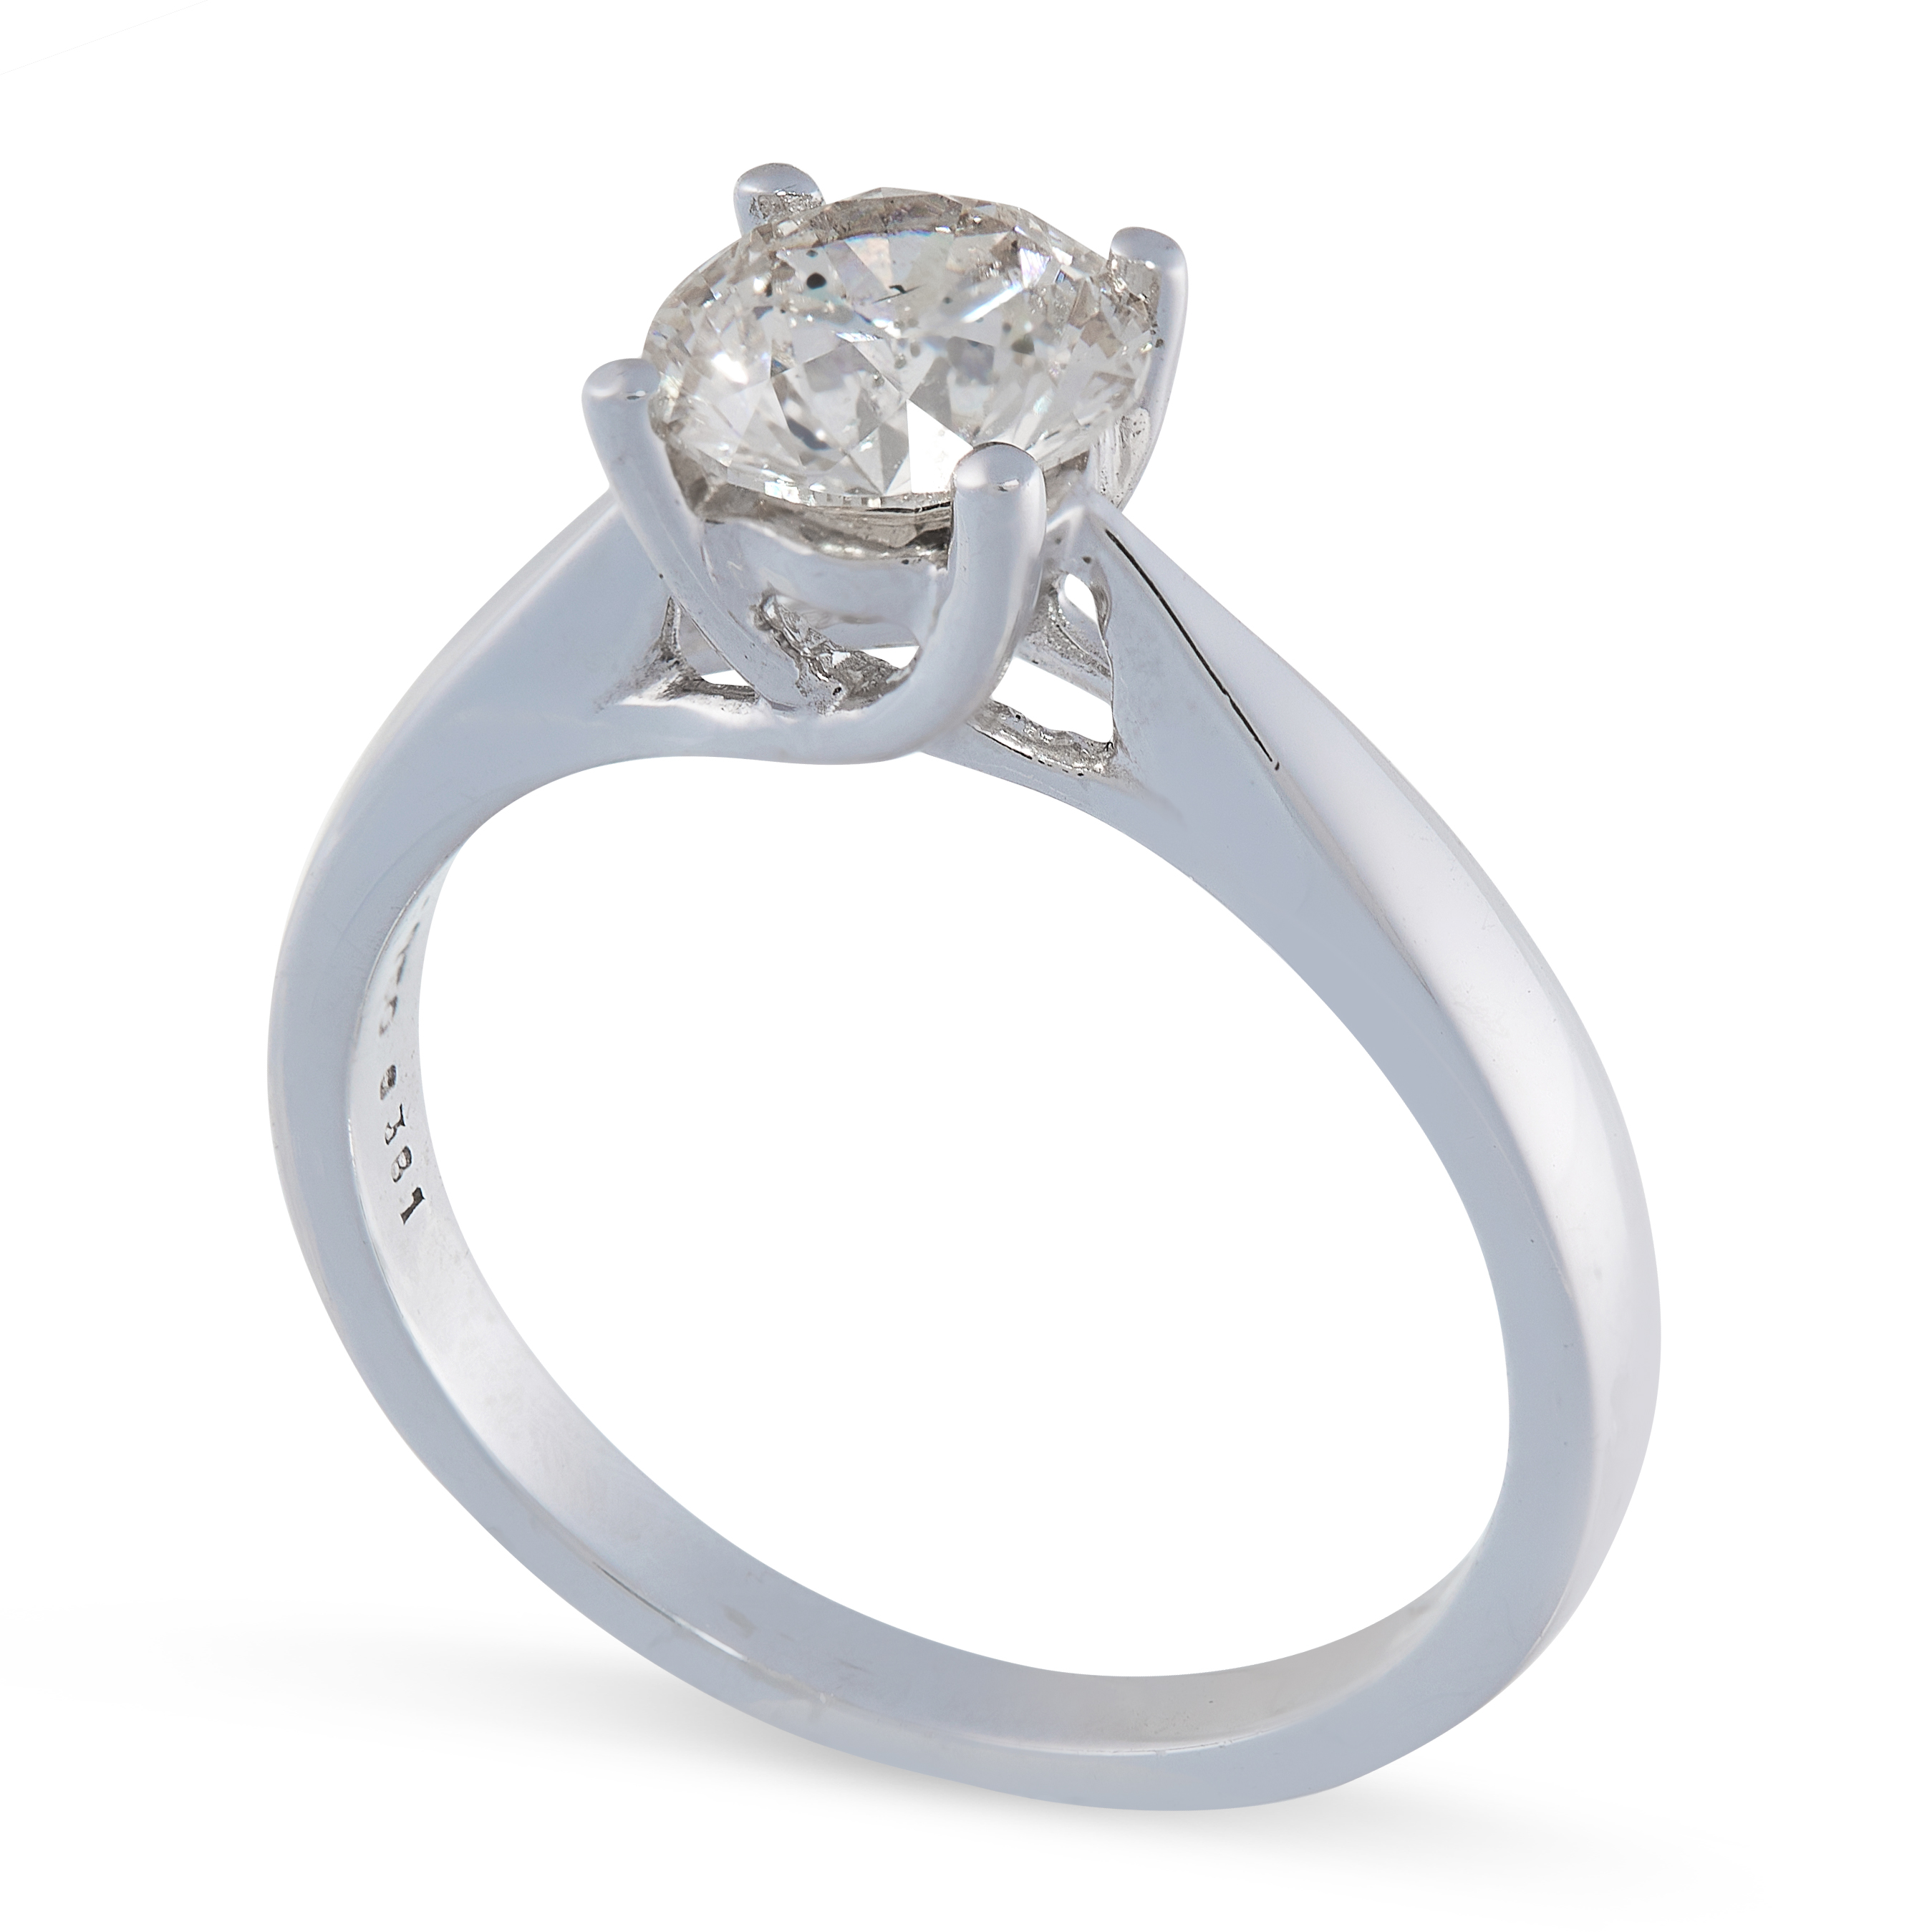 A SOLITAIRE DIAMOND ENGAGEMENT RING in 18ct white gold, set with a round cut diamond of 1.35 carats, - Image 2 of 2